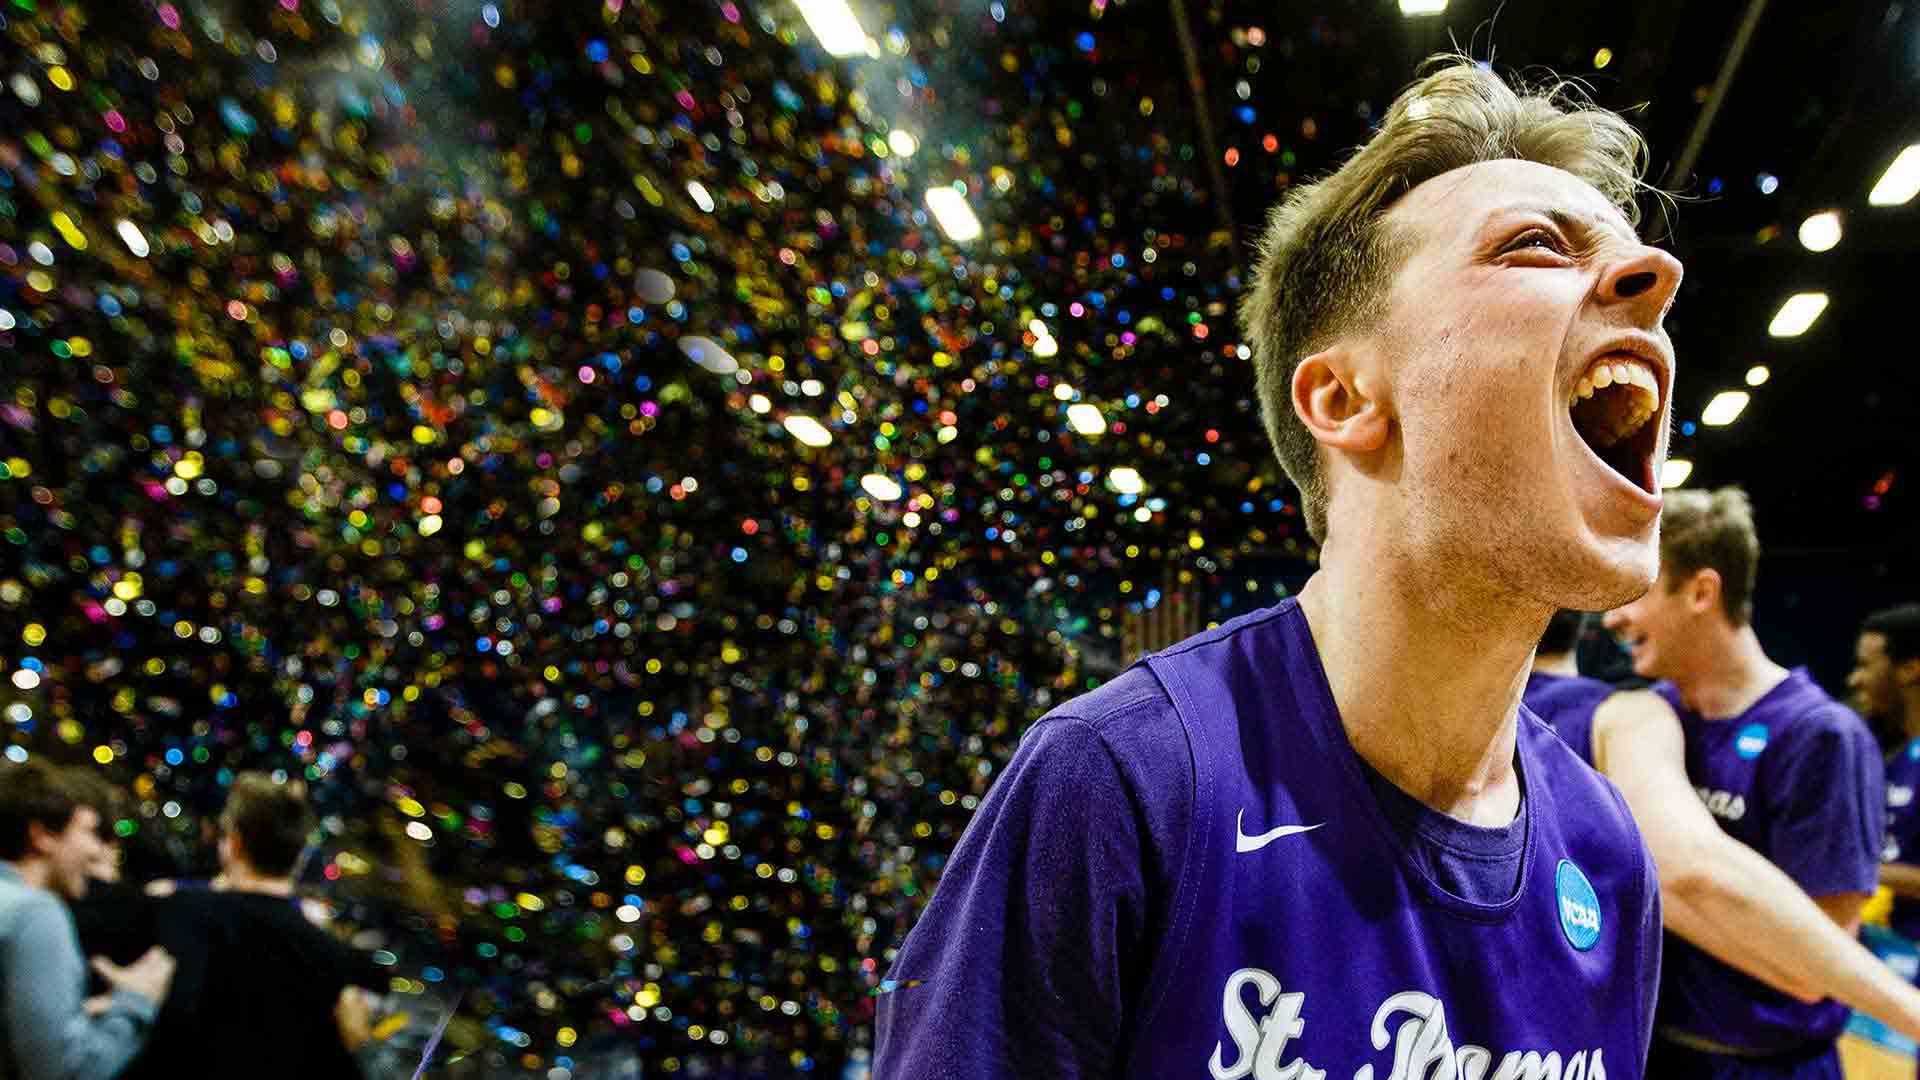 Grant Shaeffer celebrates a victory following the NCAA Division III men's basketball championship game.